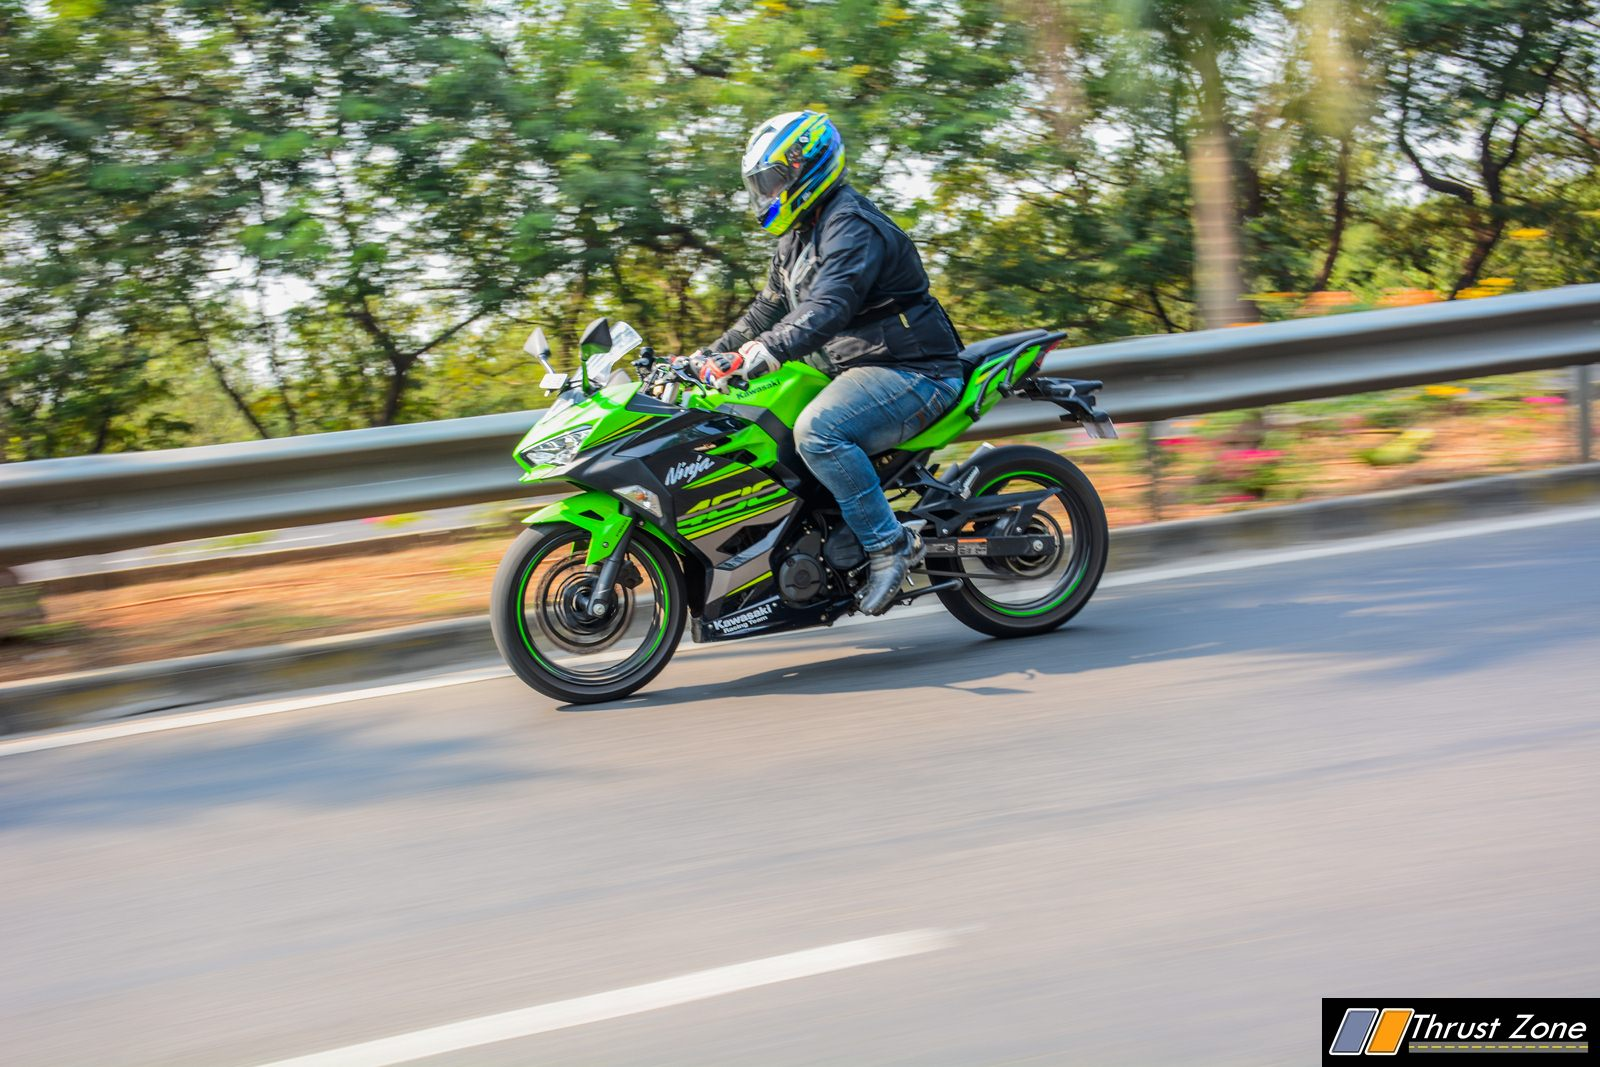 2018-Kawasaki-Ninja-400-India-Review-2